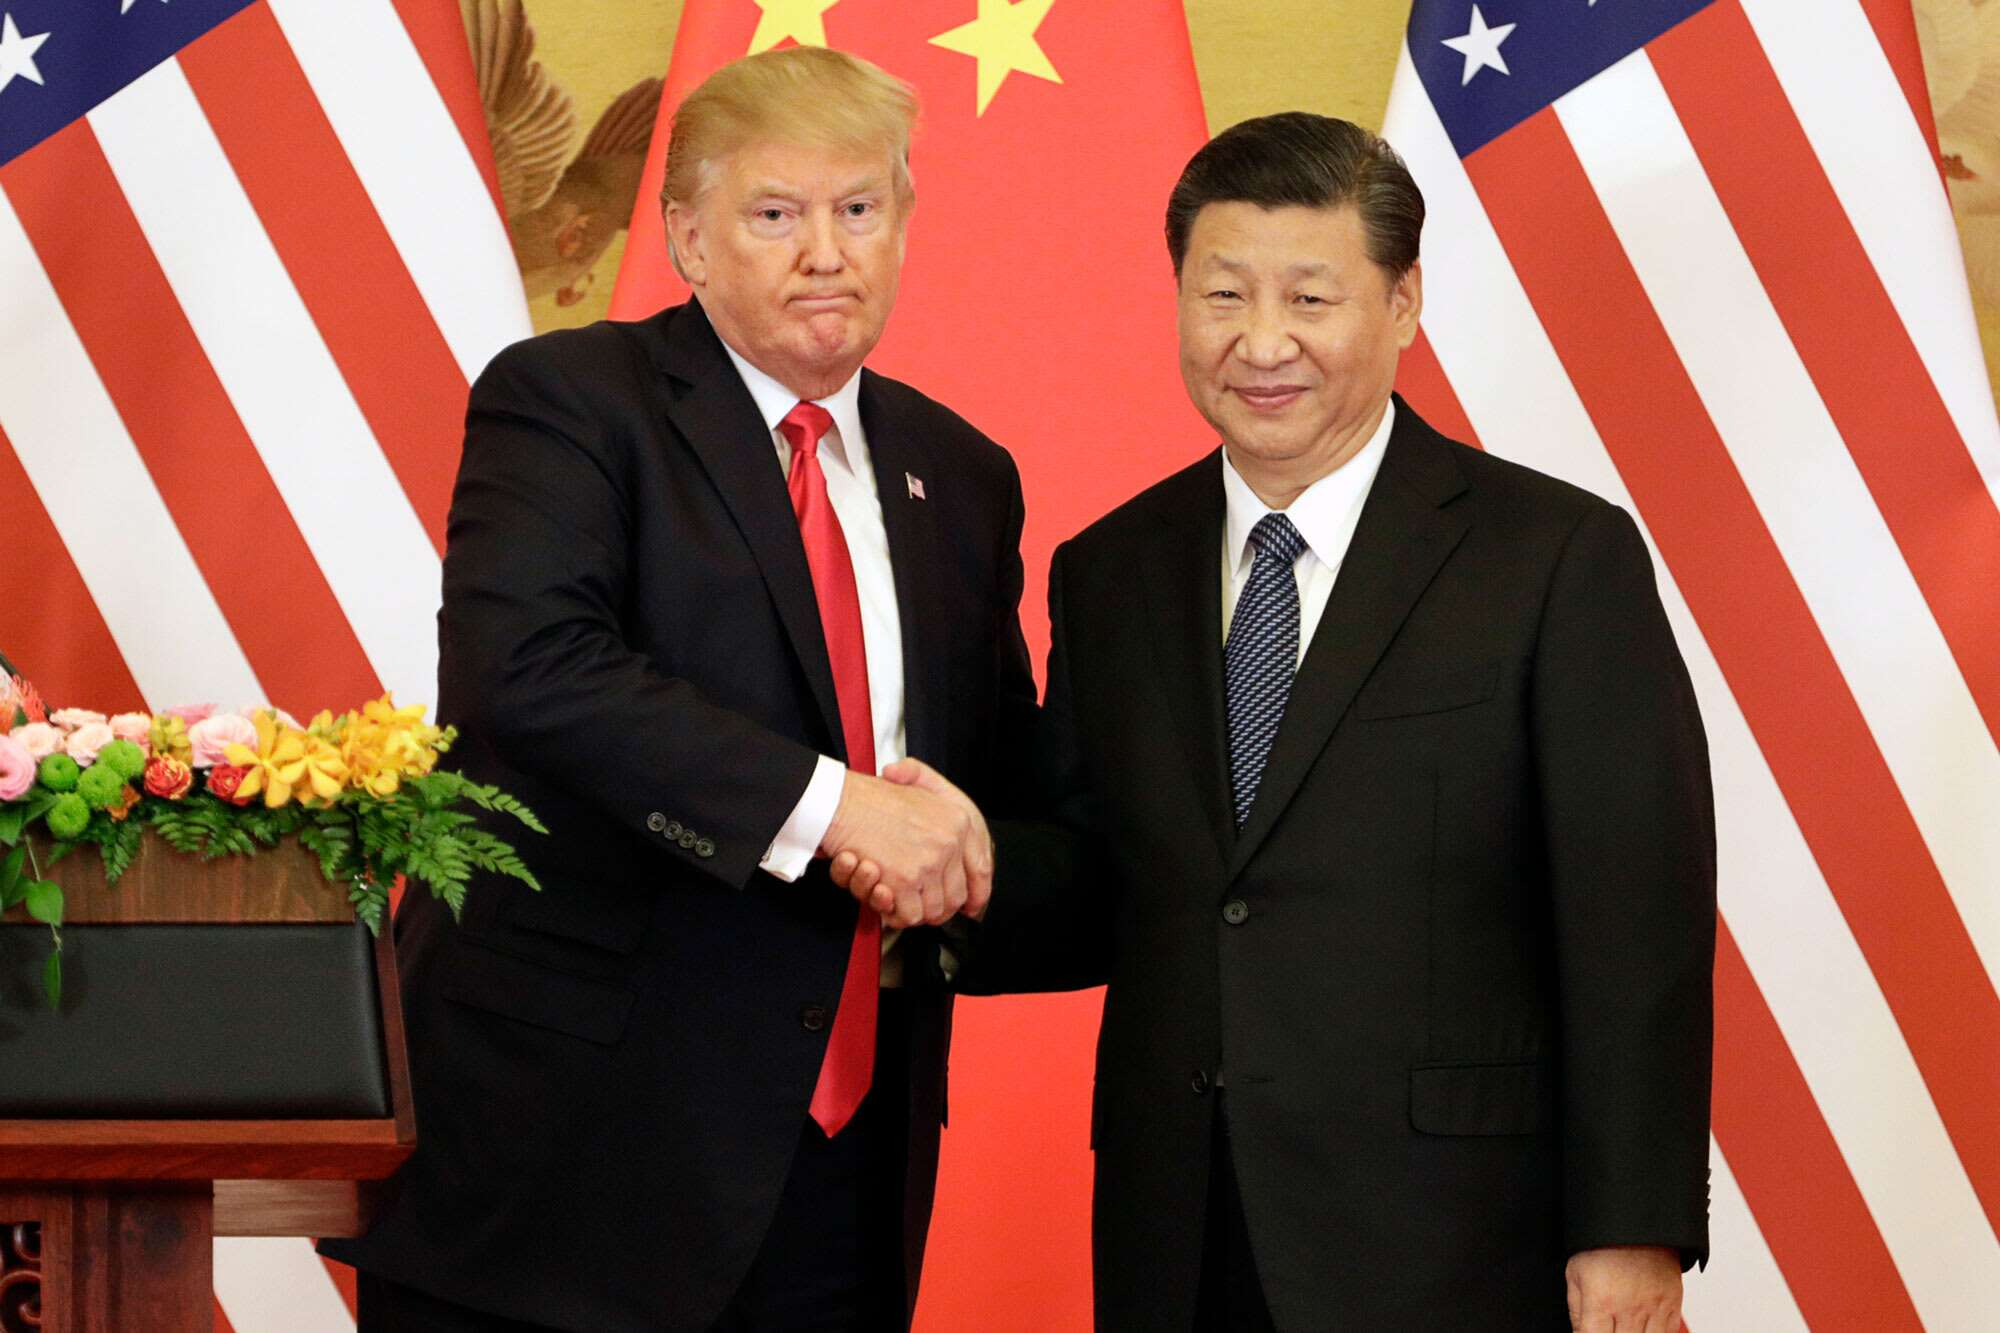 UN must hold China accountable for COVID-19 – Trump